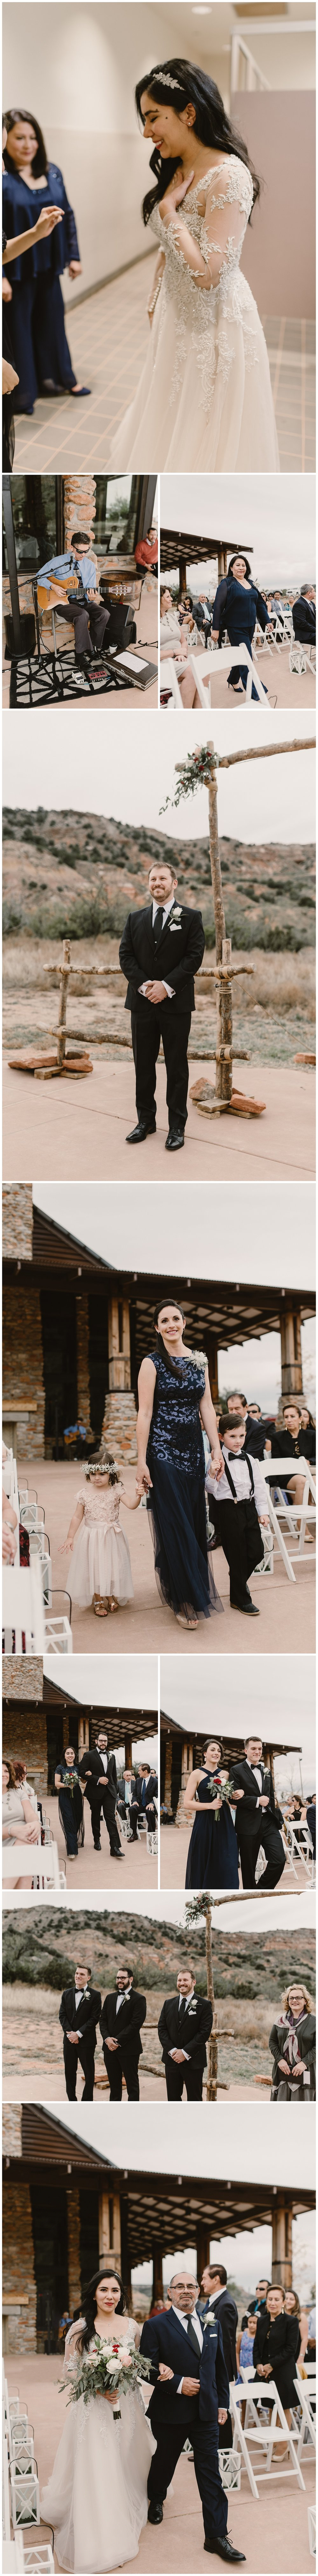 Palo Duro Wedding